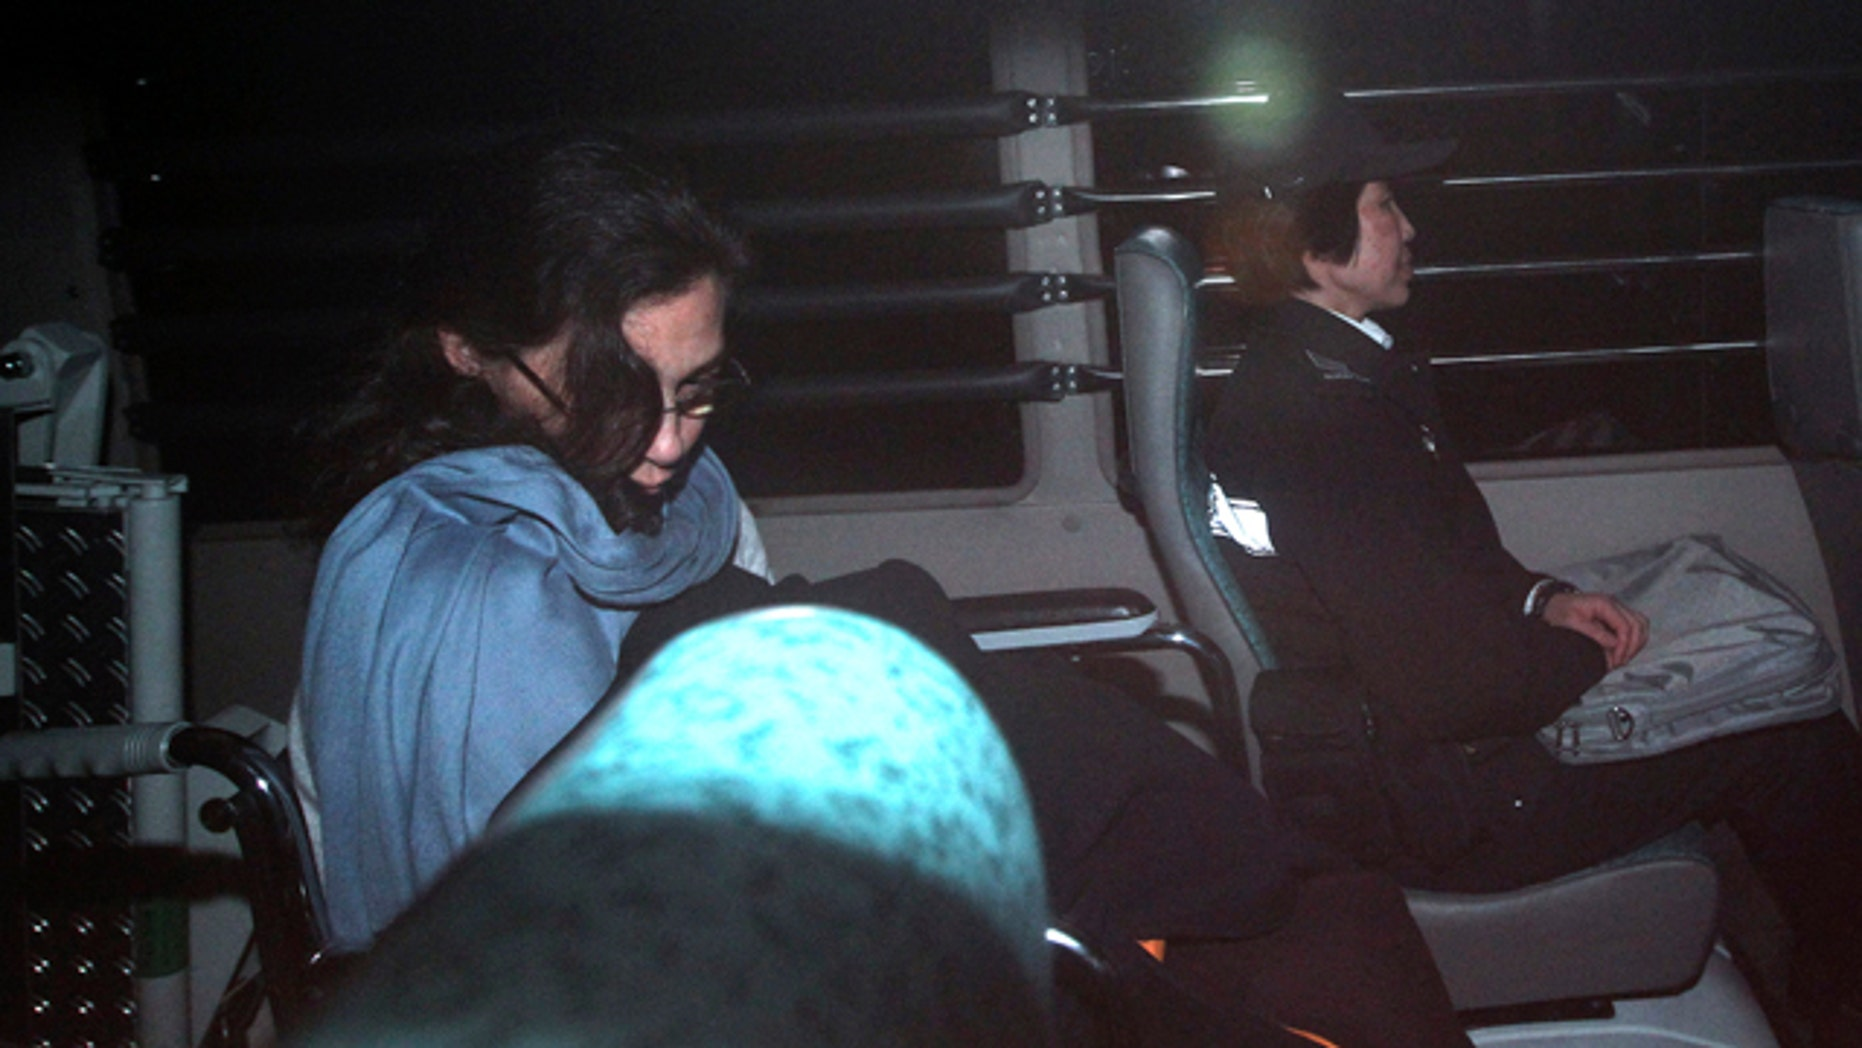 March 24: Nancy Kissel, left, an American woman accused of killing her husband, leaves the High Court by a prison van in Hong Kong. A Hong Kong jury is deliberating in the retrial of Kissel accused of murdering her wealthy husband after drugging his milkshake. (AP)